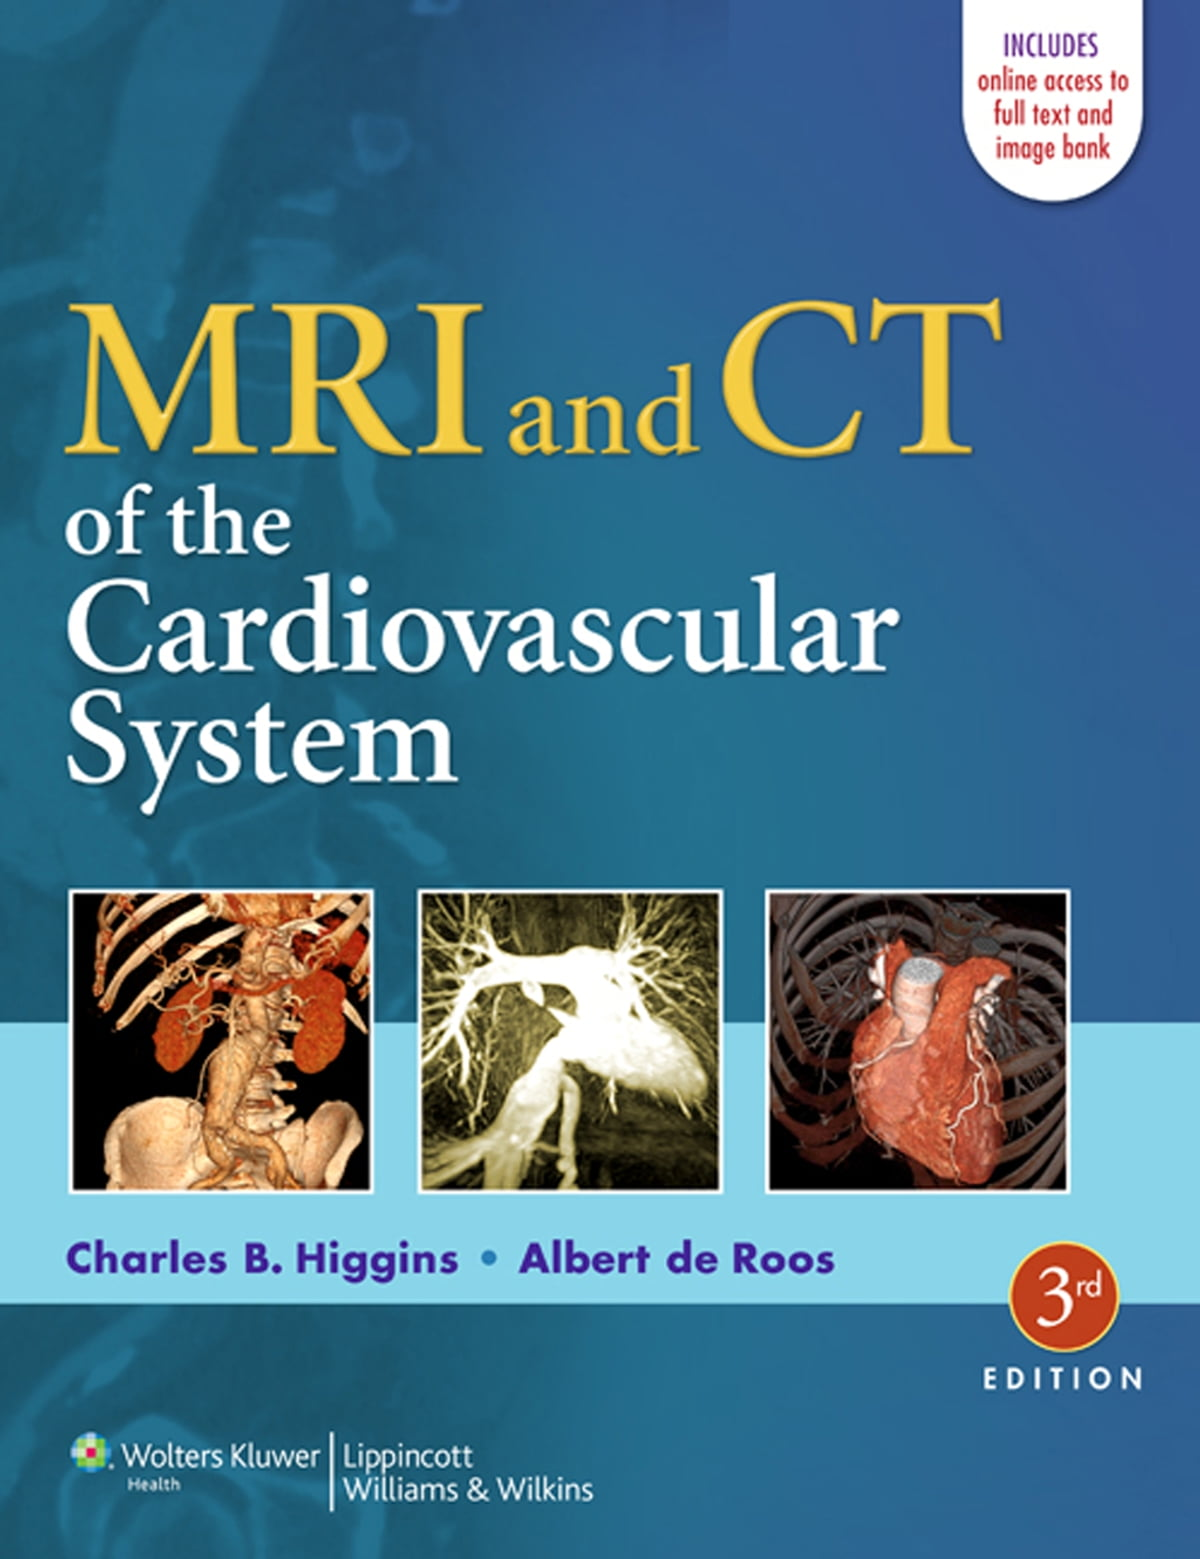 Mri And Ct Of The Cardiovascular System Ebook By Charles B Higgins